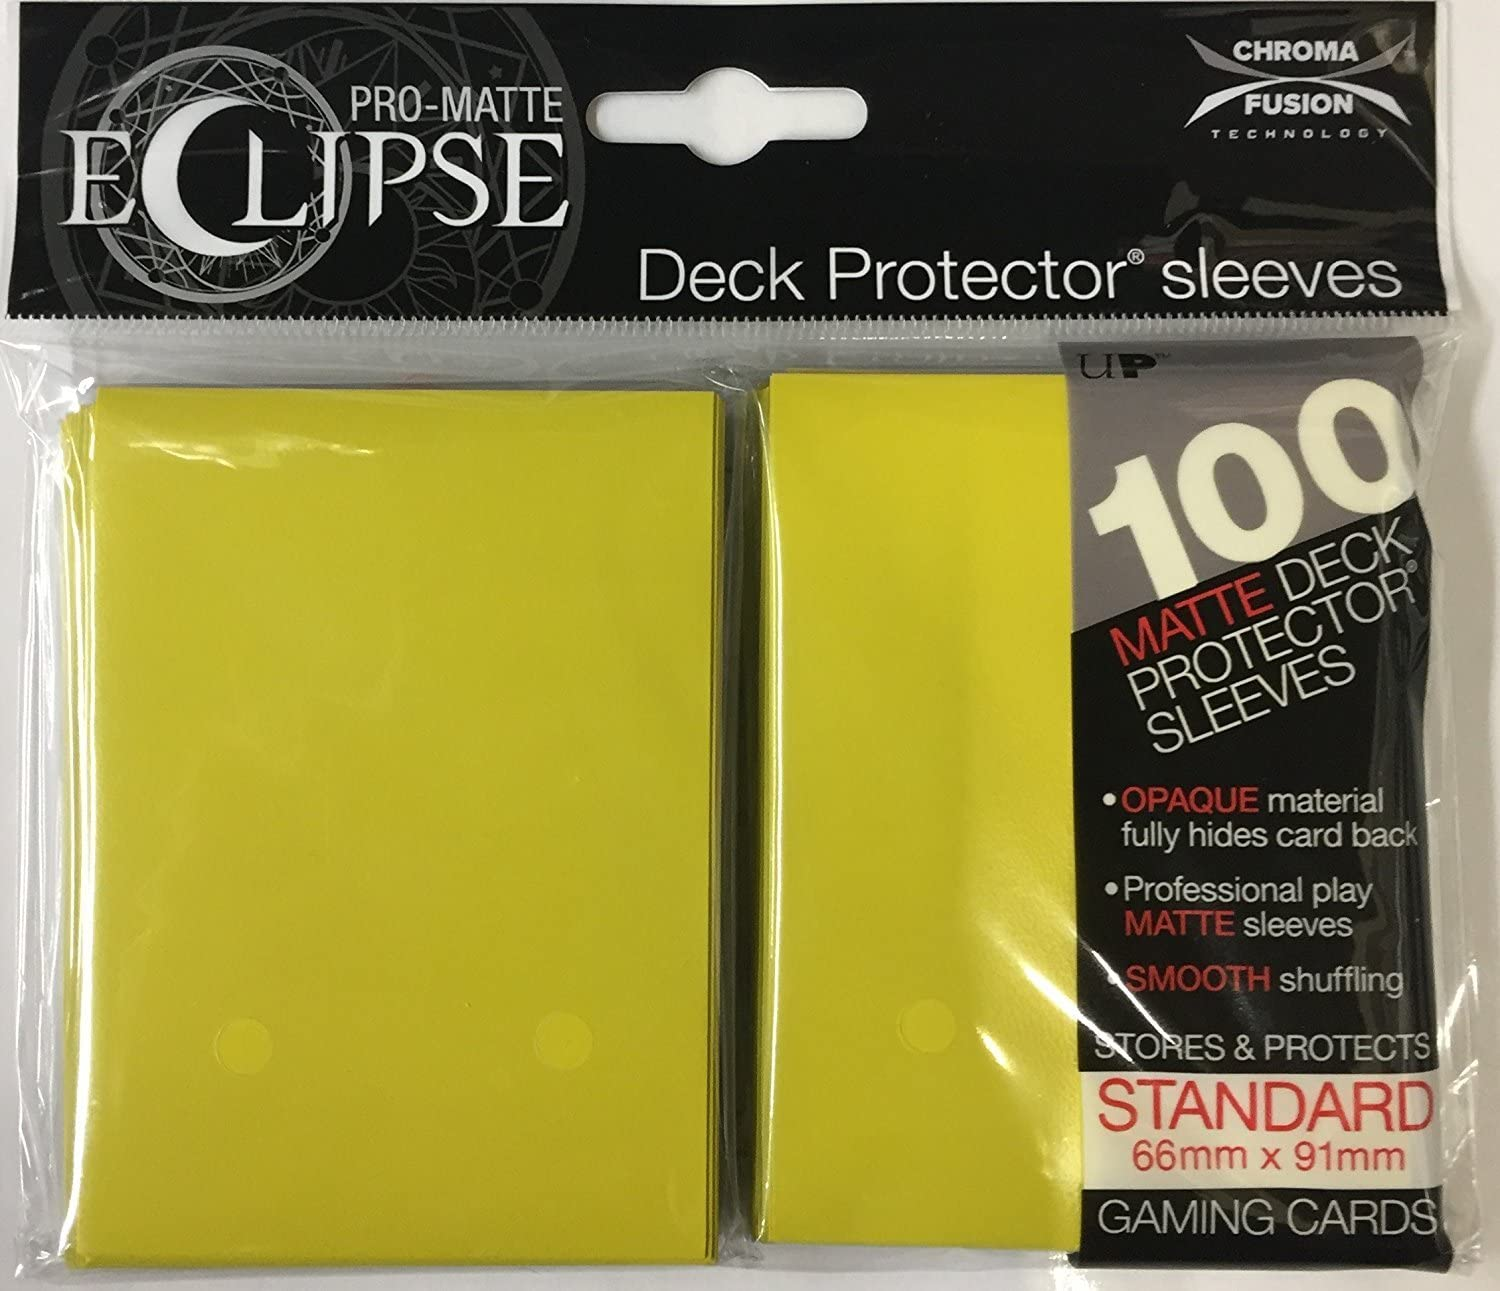 Ultra Pro Eclipse Card Sleeves Deck Protector PRO-Matte 100 Pokemon MTG